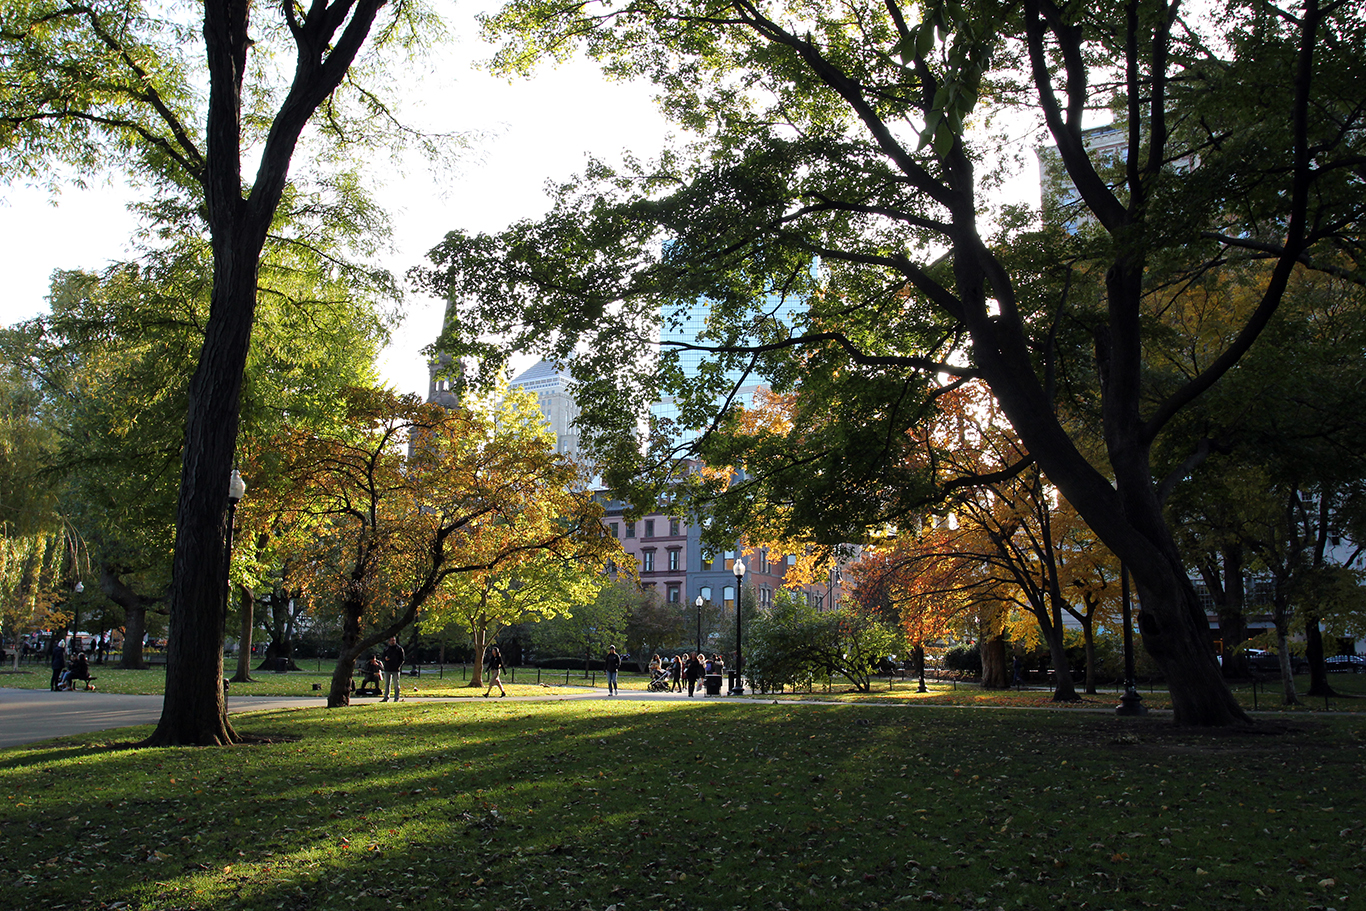 Fall Foliage in the Afternoon Sunlight at Boston Common